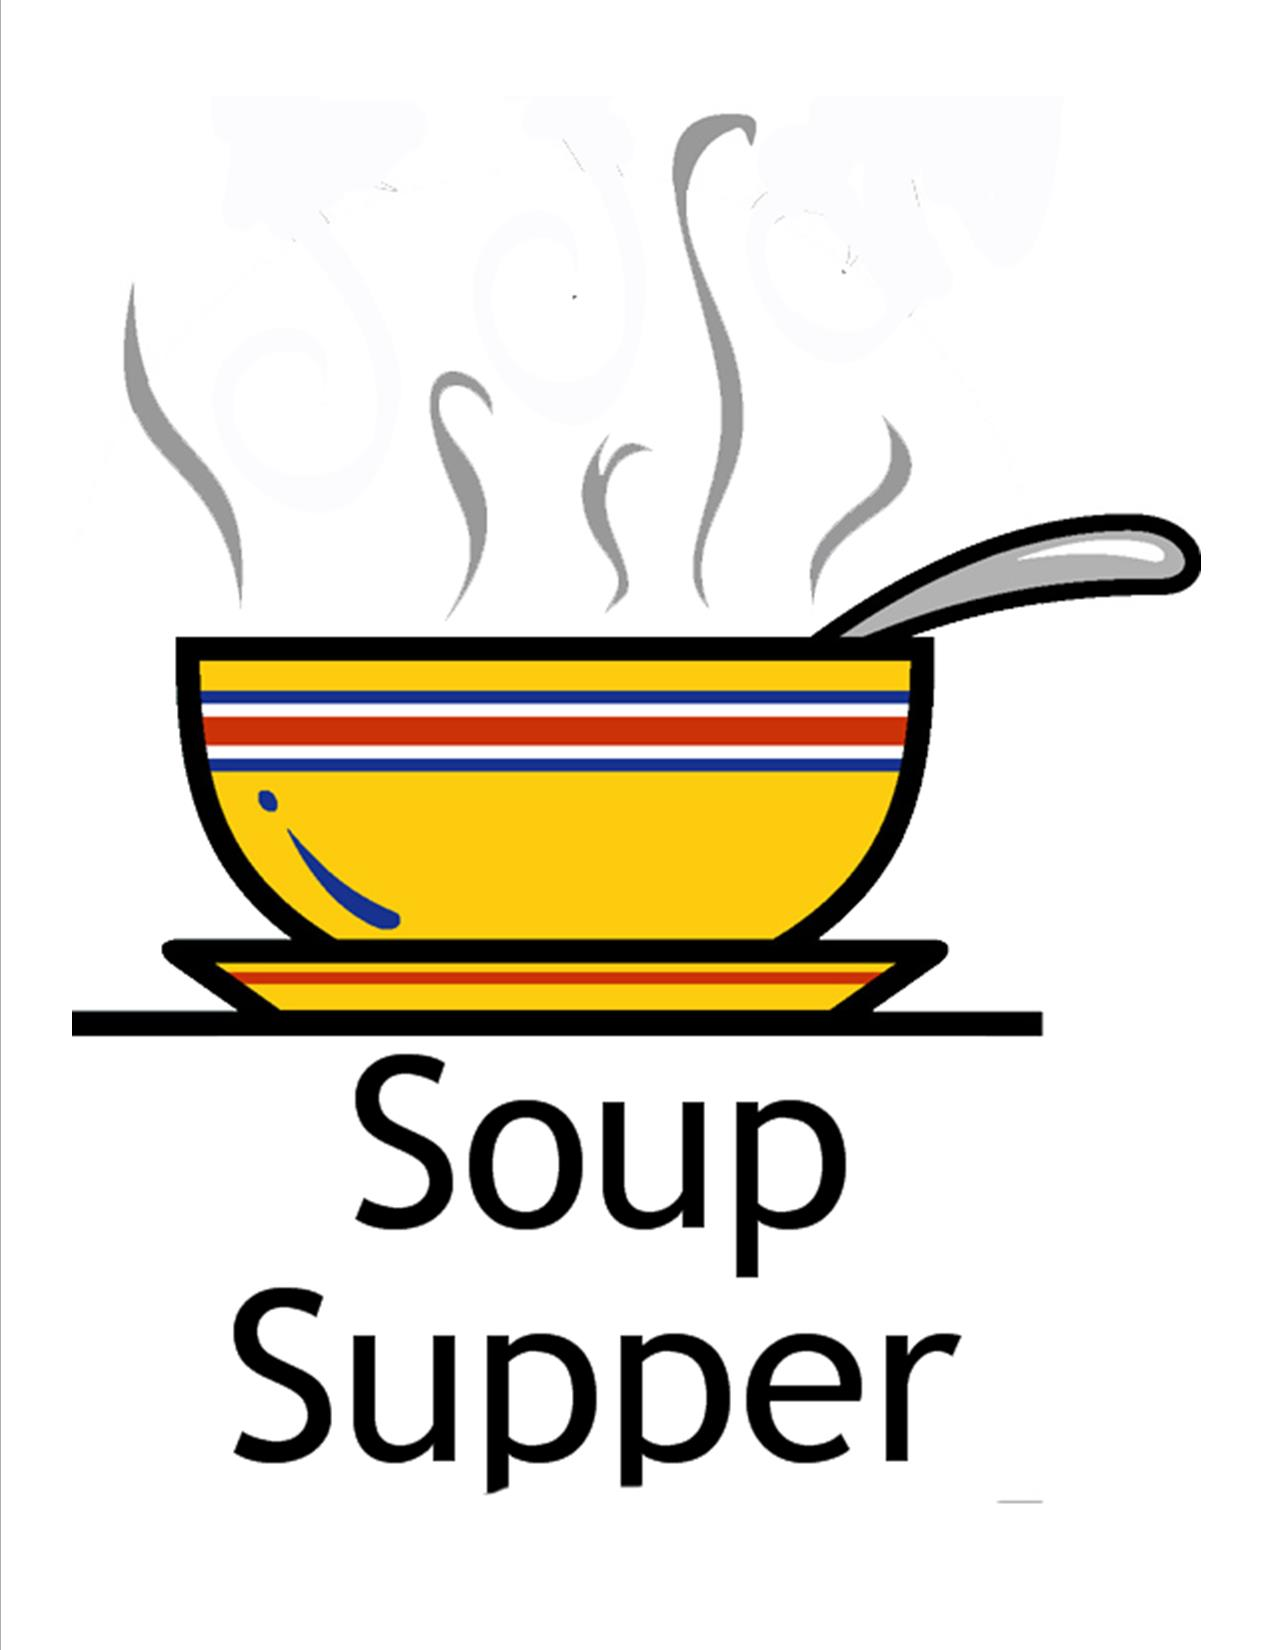 soup-supper-clip-art